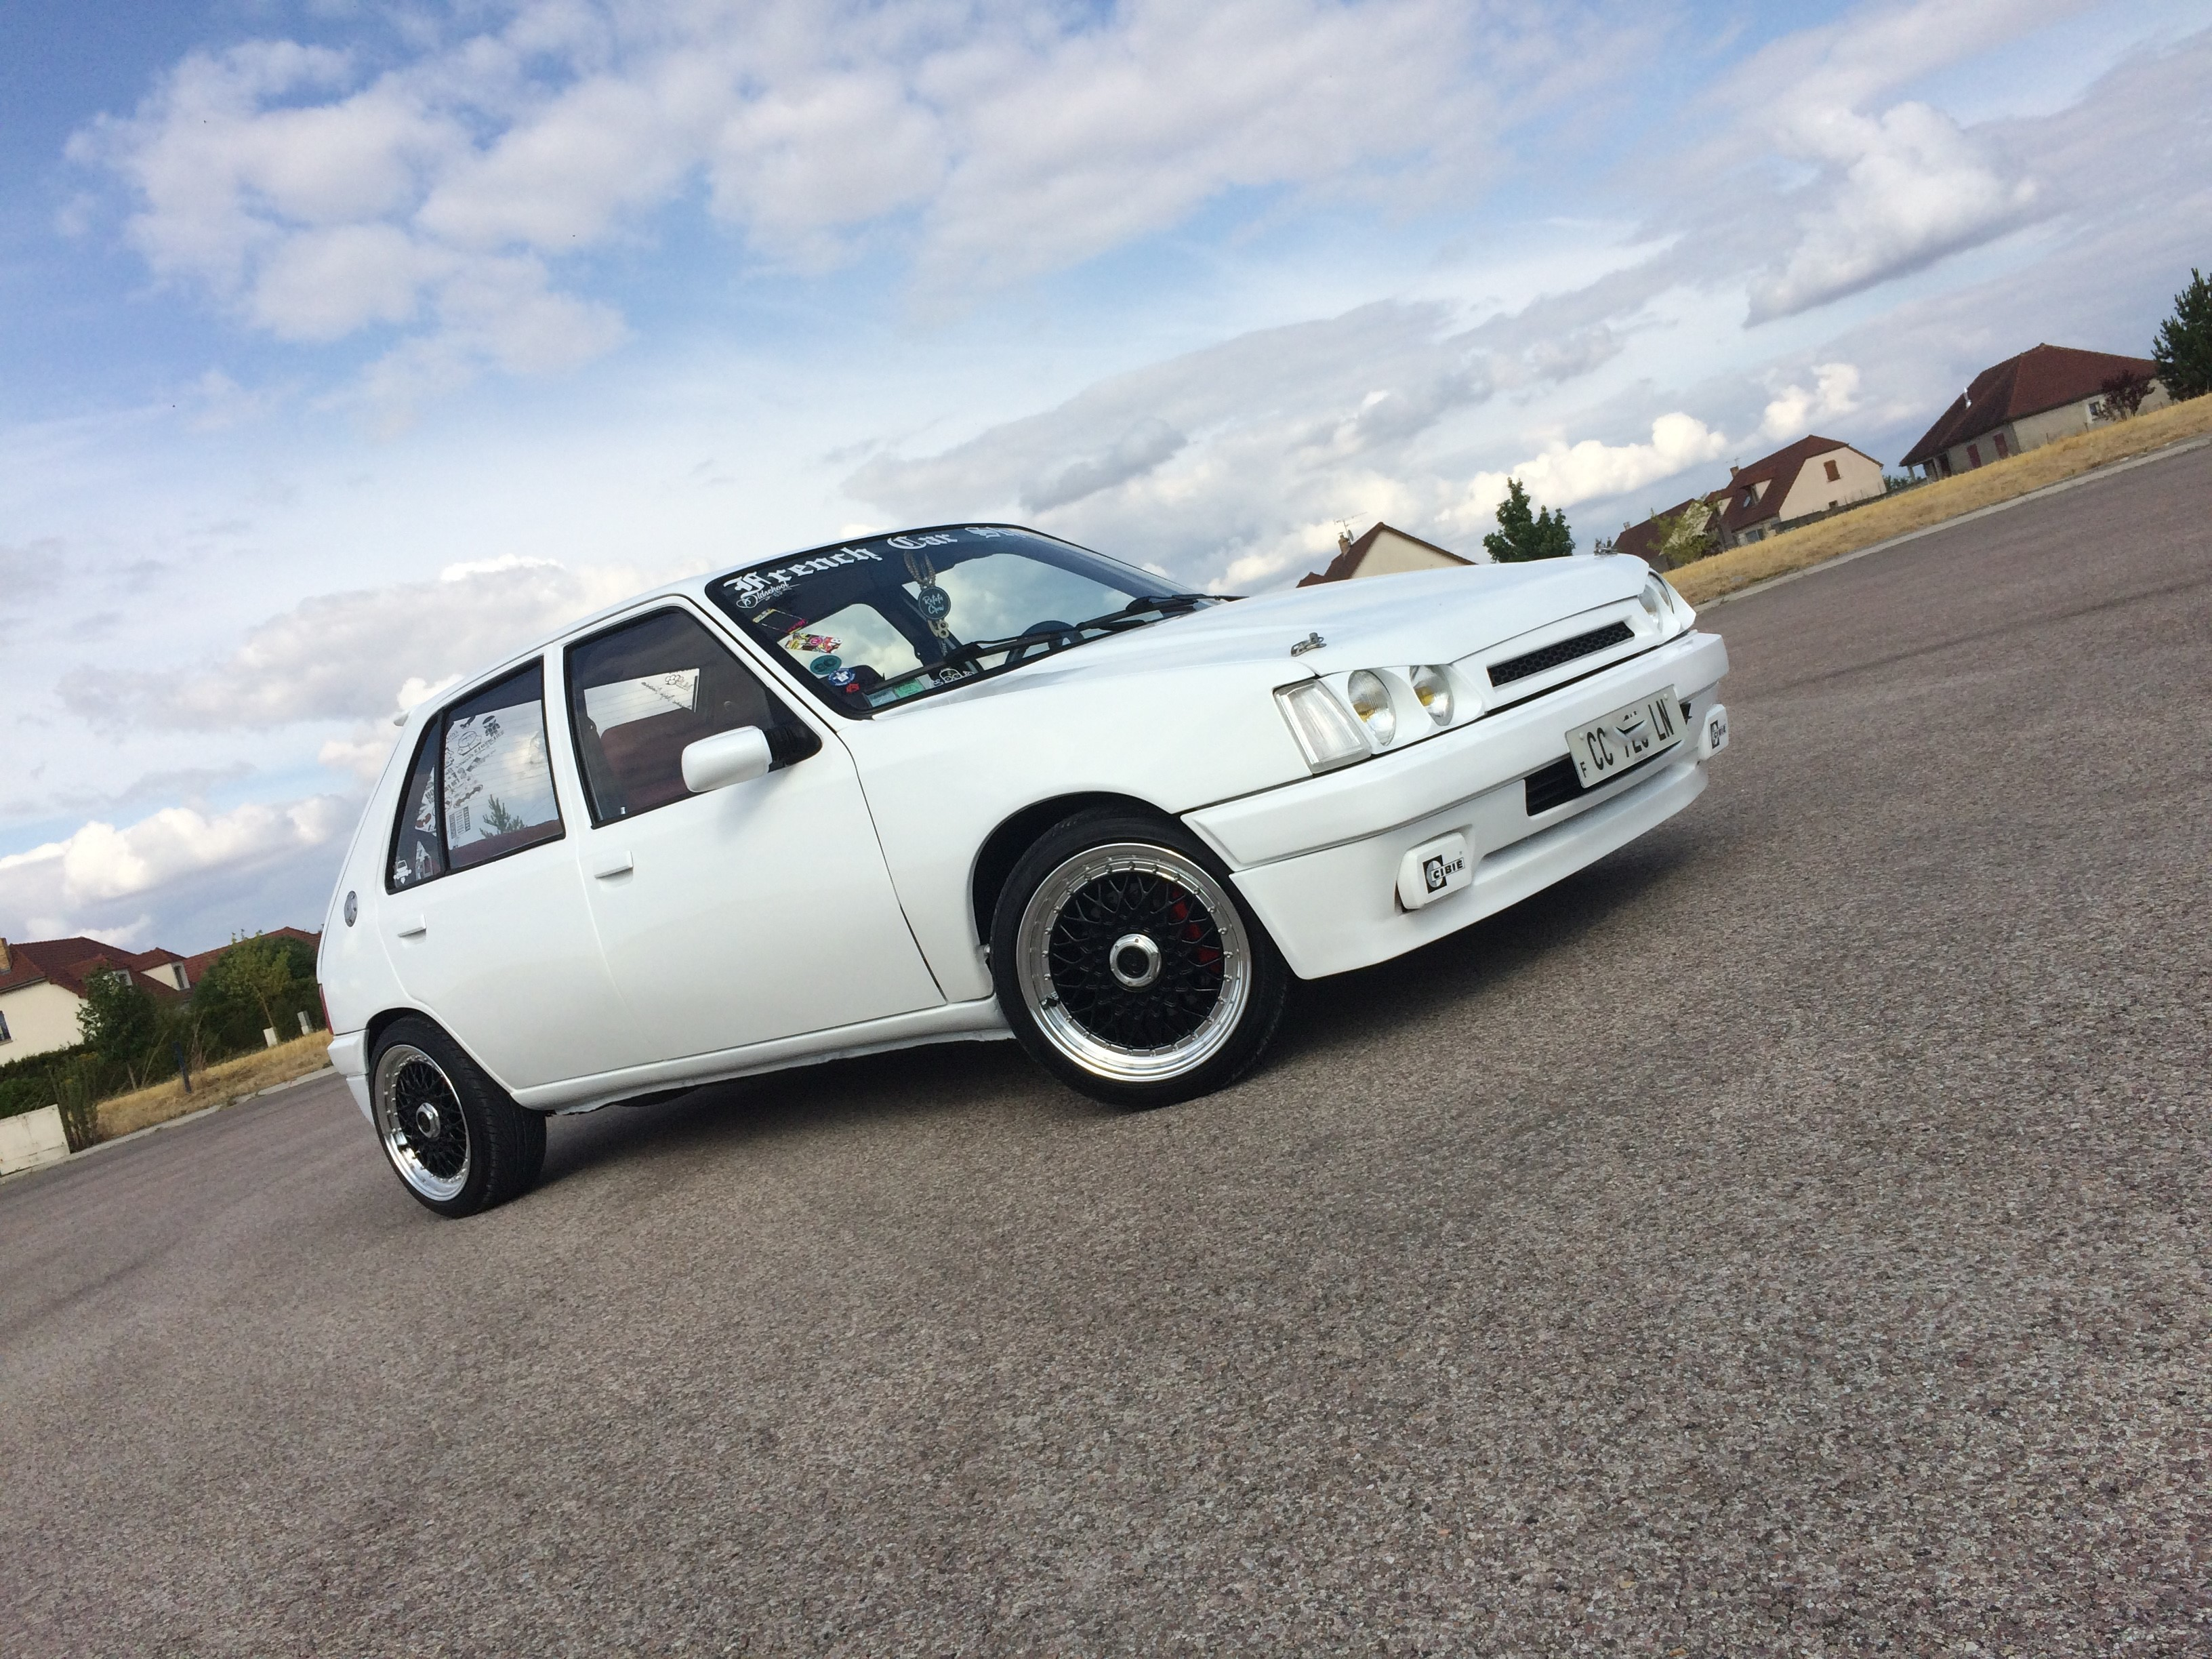 peugeot 205 tuning static car french car low style clean (10)